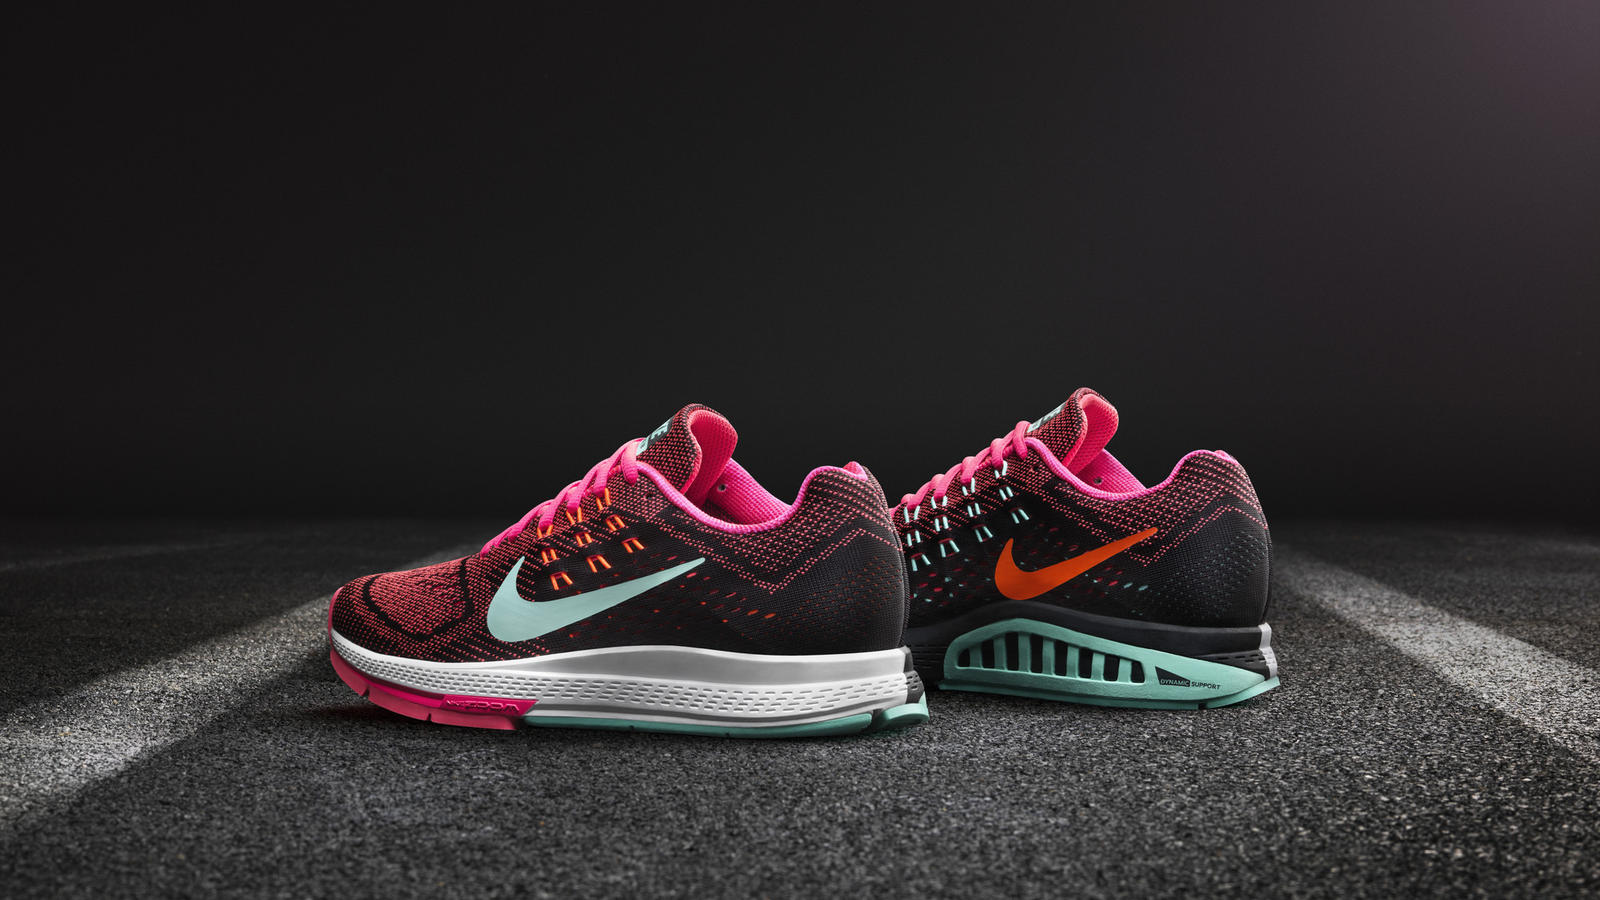 New Nike Air Zoom Structure: Stability Has Never Been Faster - Nike News